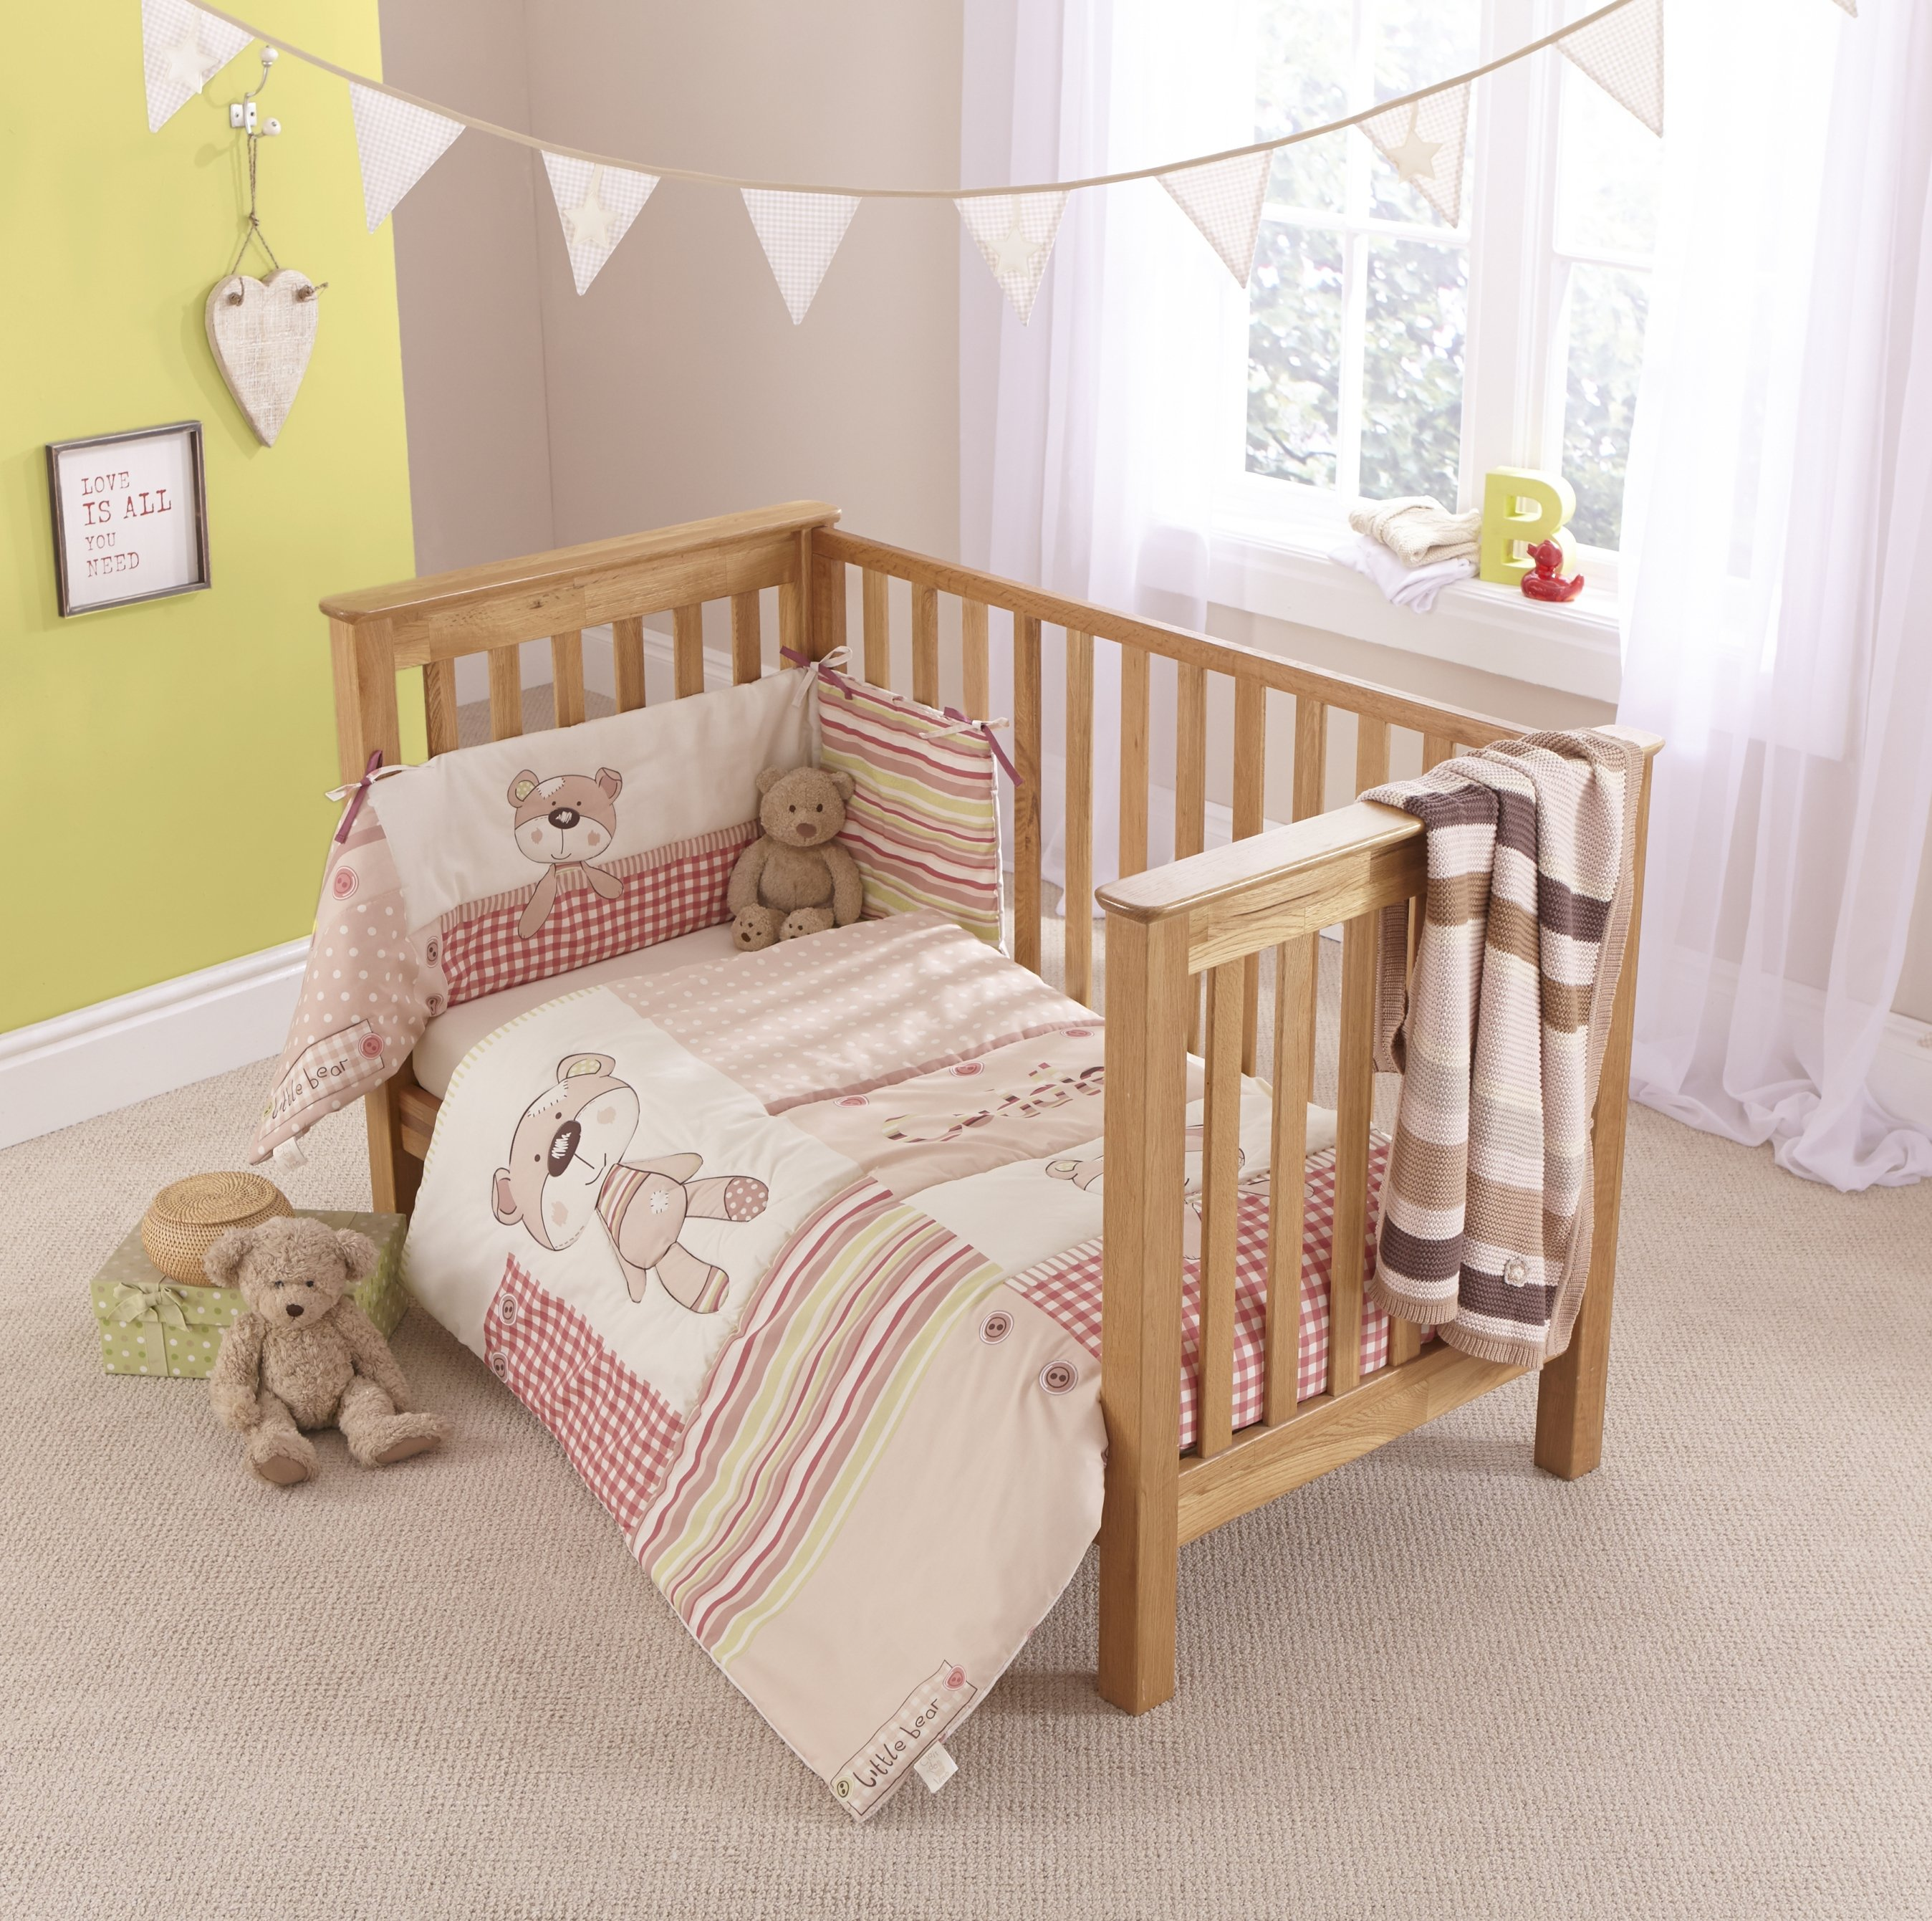 Cot Bedding Available From